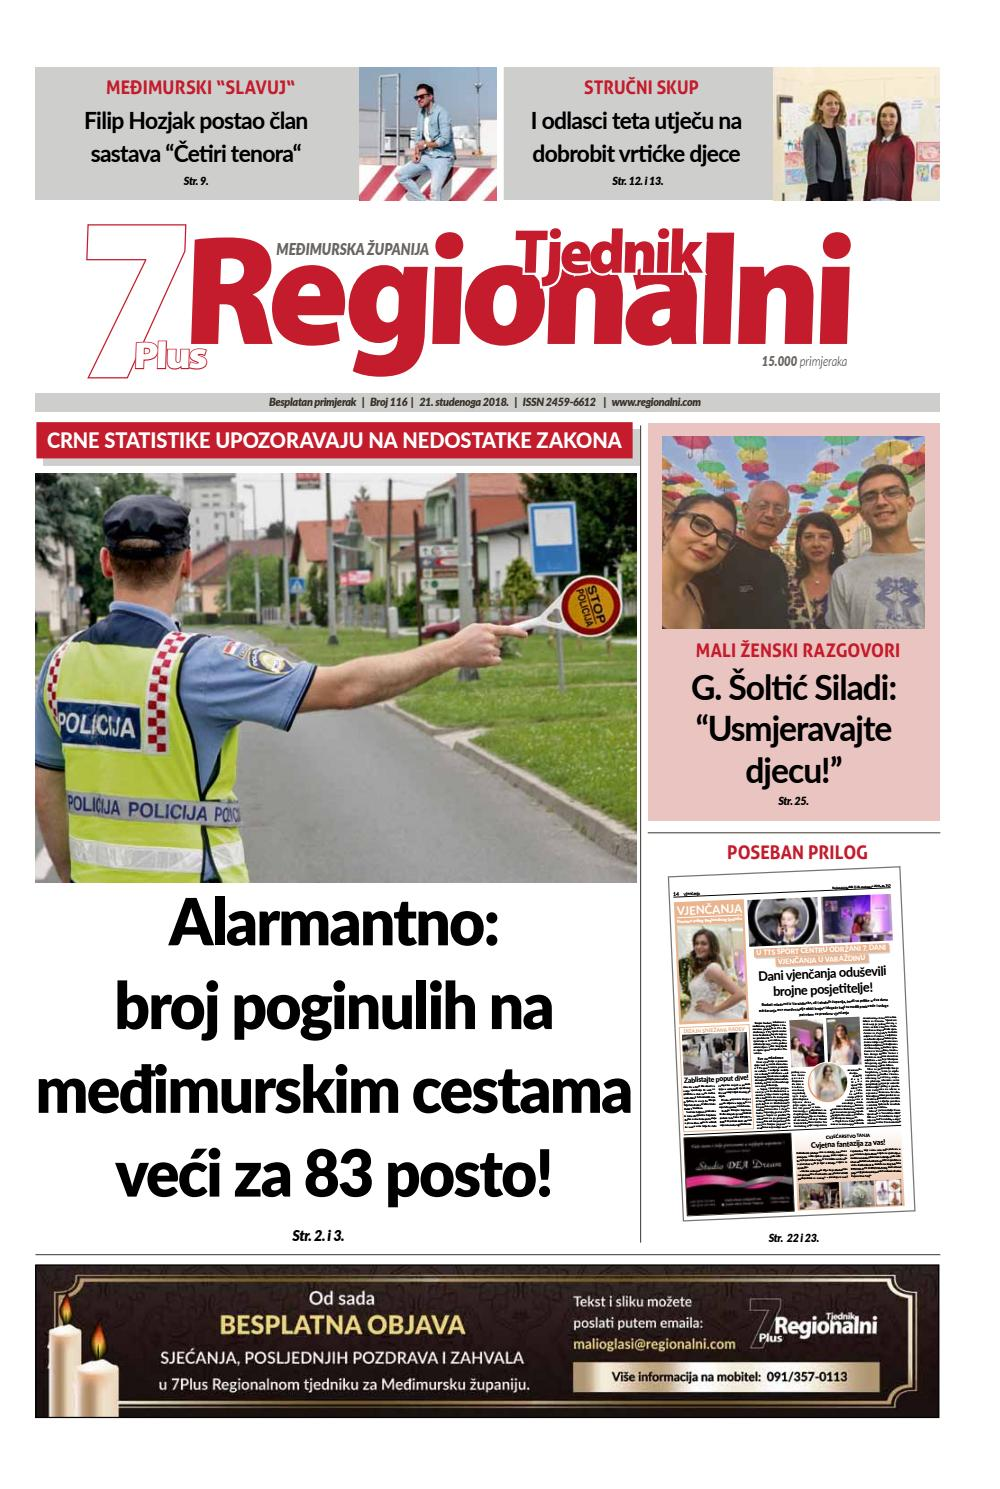 Nyt dating program na kanalu 5